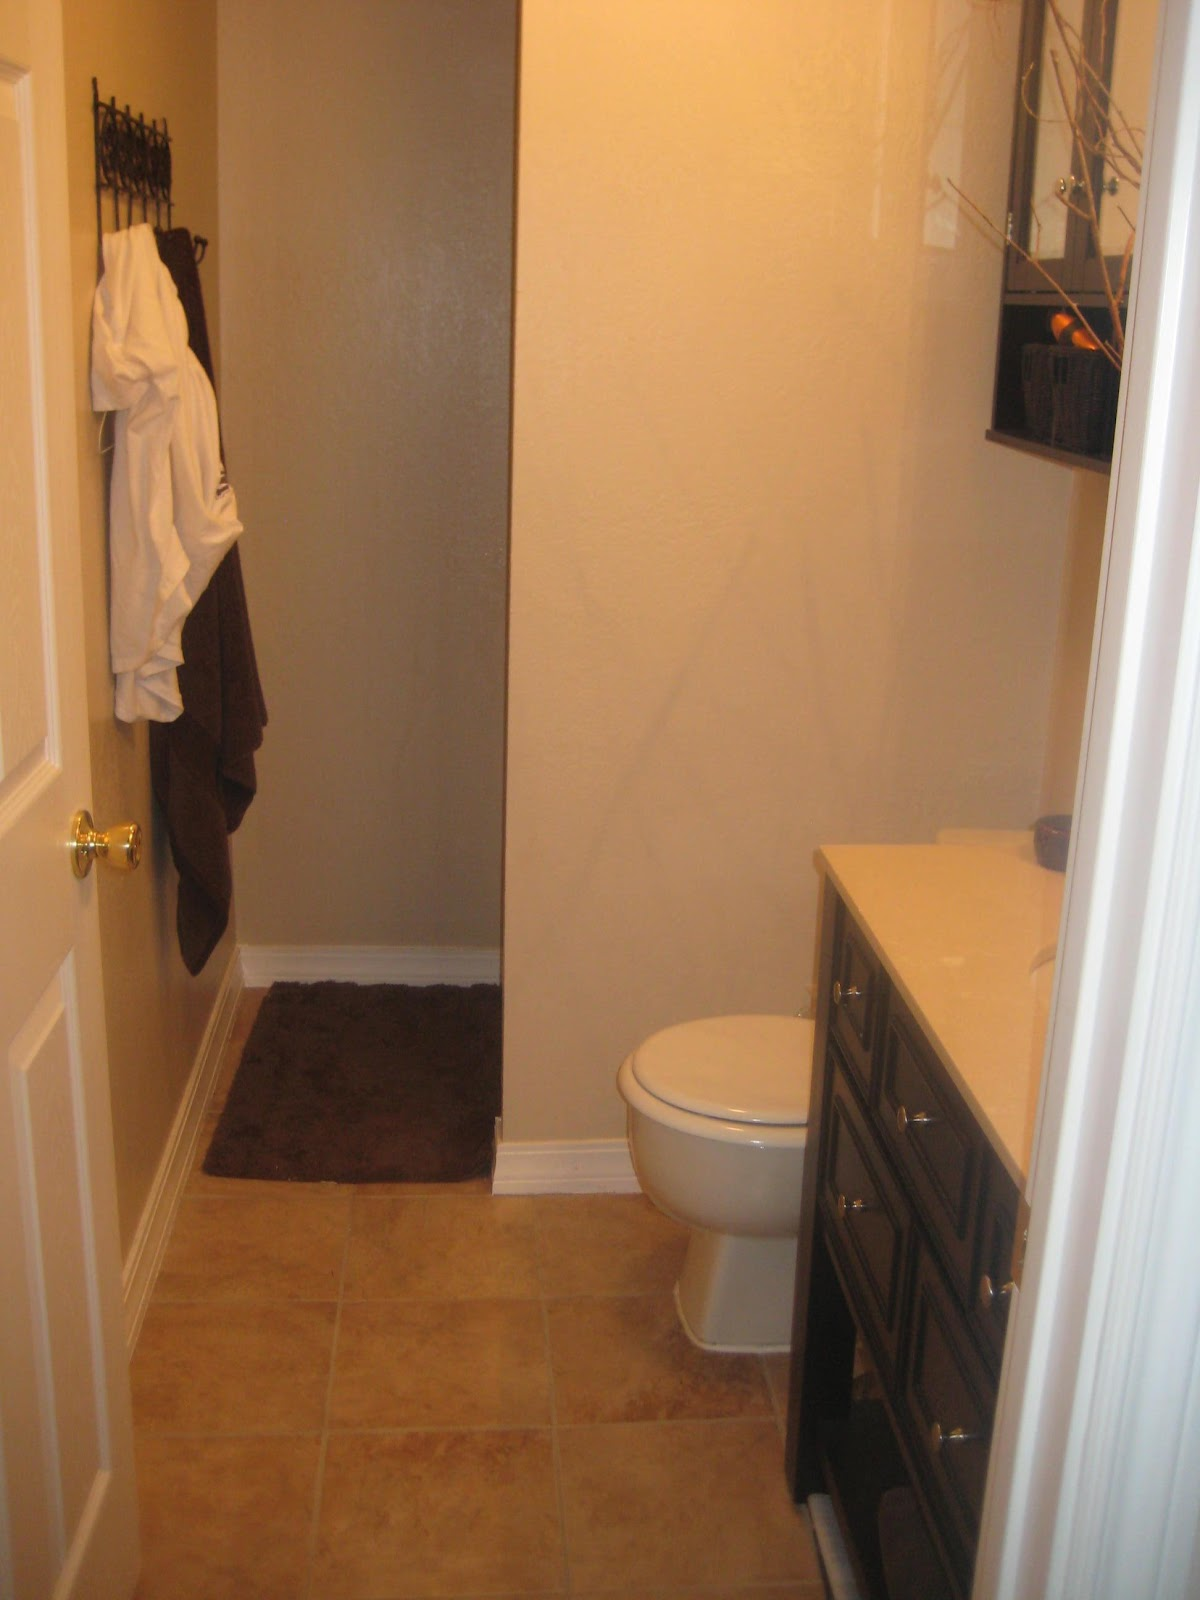 Nice girls rule nice girl small budget bathroom remodel before and after Cheap bathroom remodel before and after